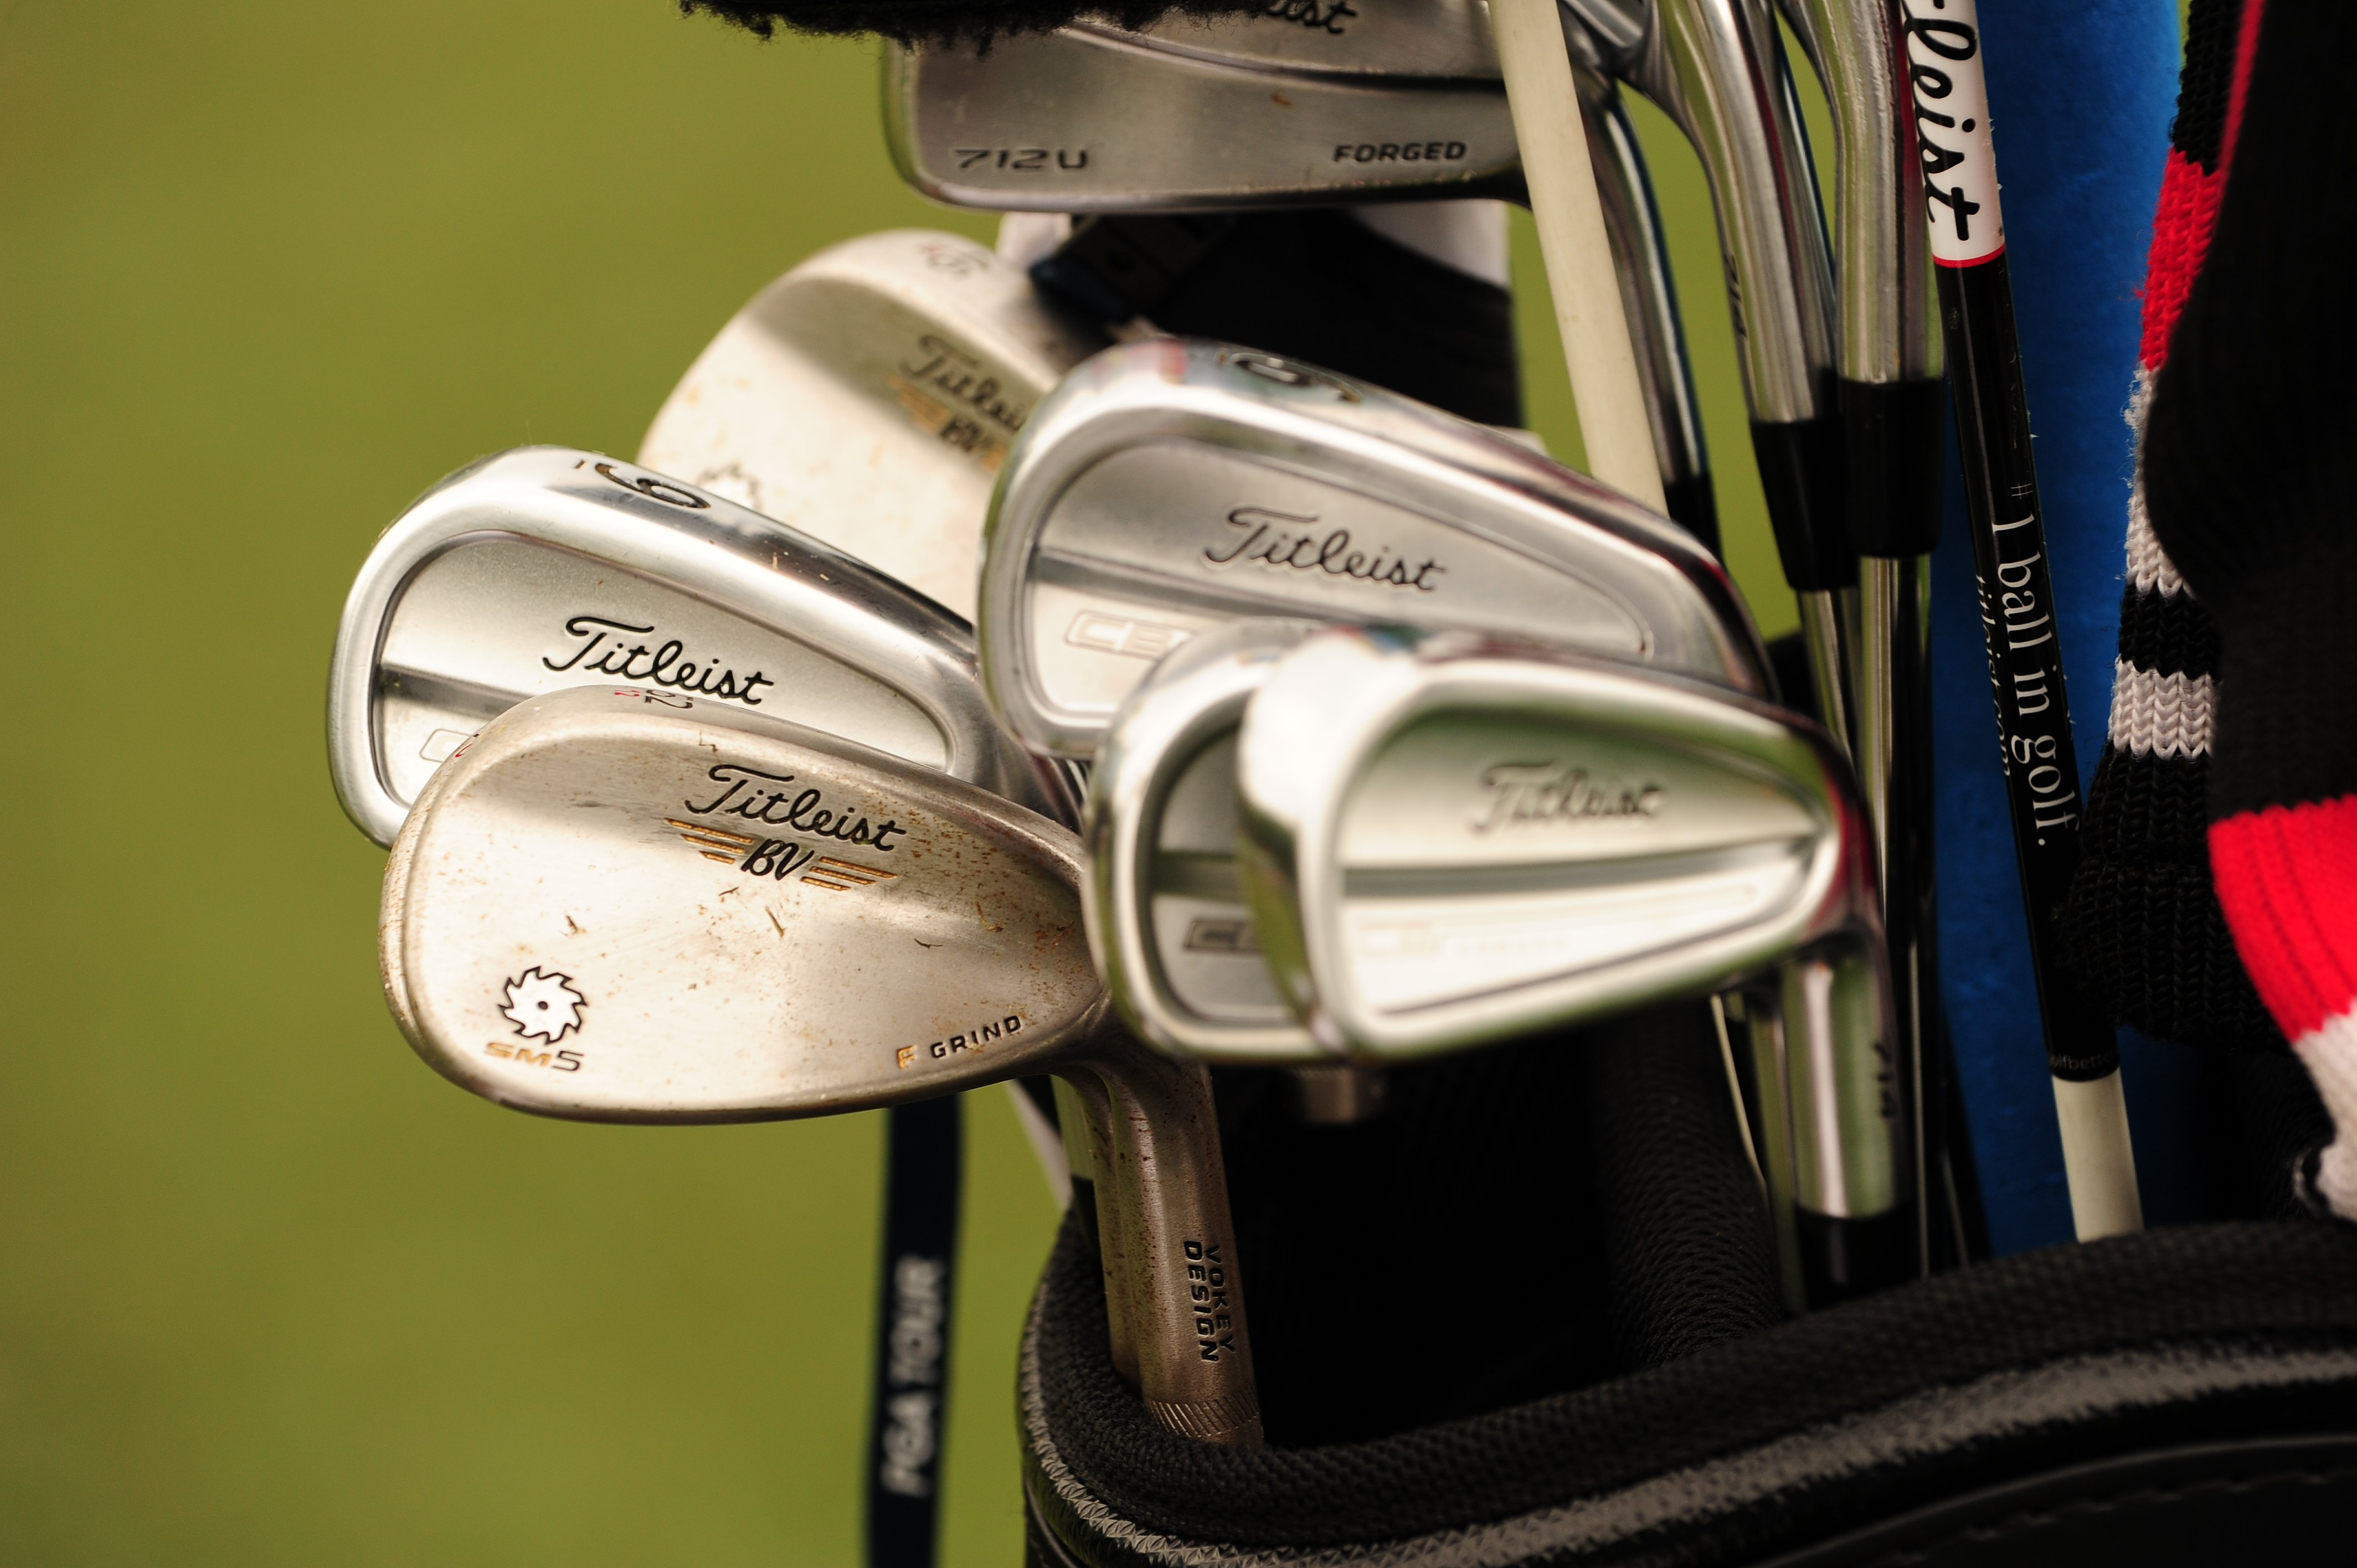 Titleist player Ben Kohles carries CB Forged irons, Vokey SM5 wedges, and a 712U driving iron, among other things.